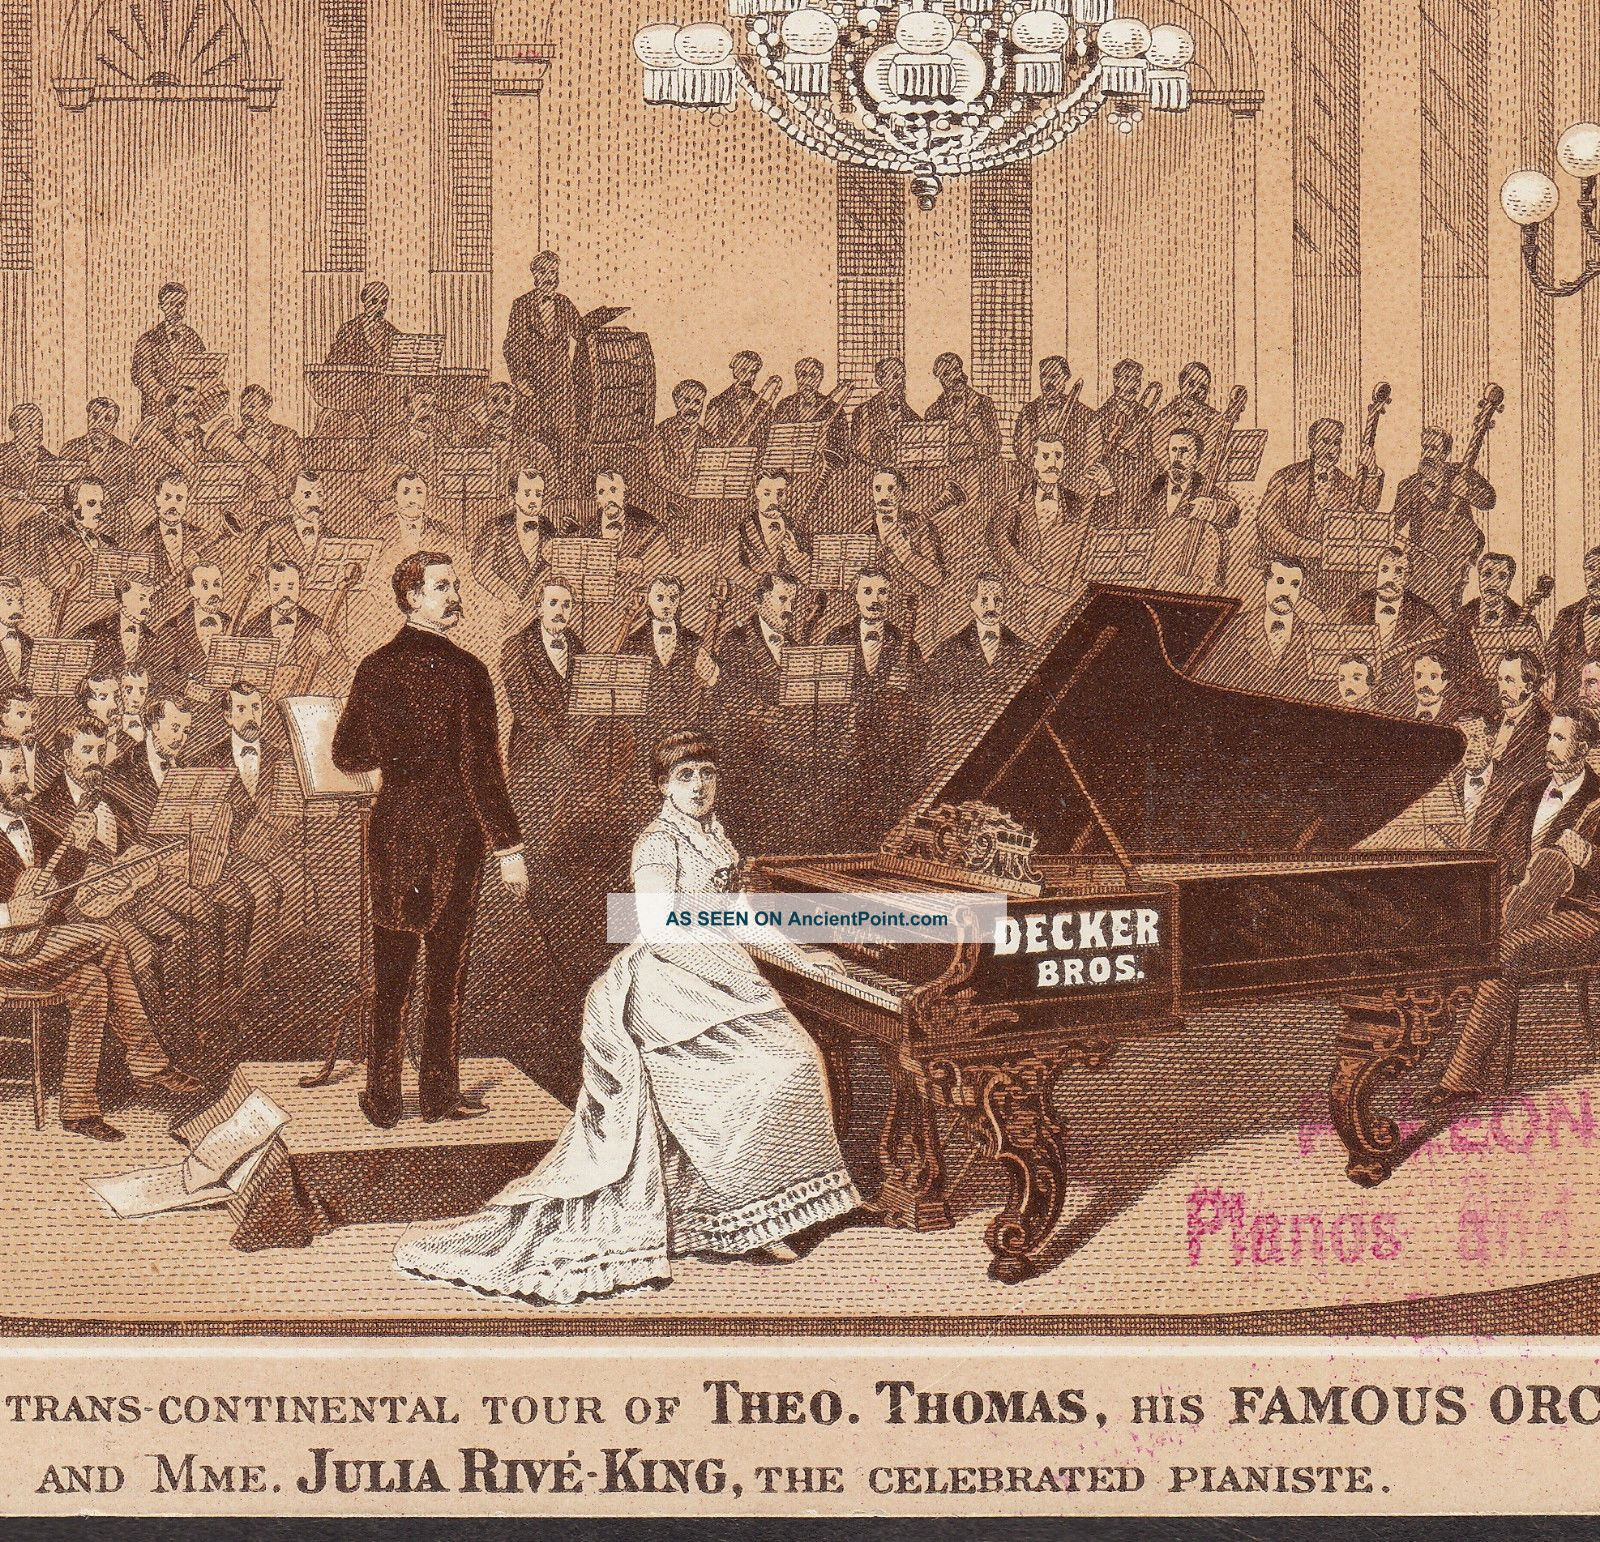 Decker Bros Piano Concert Julia Rive - King Theo Thomas Orchestra Advertising Card Keyboard photo